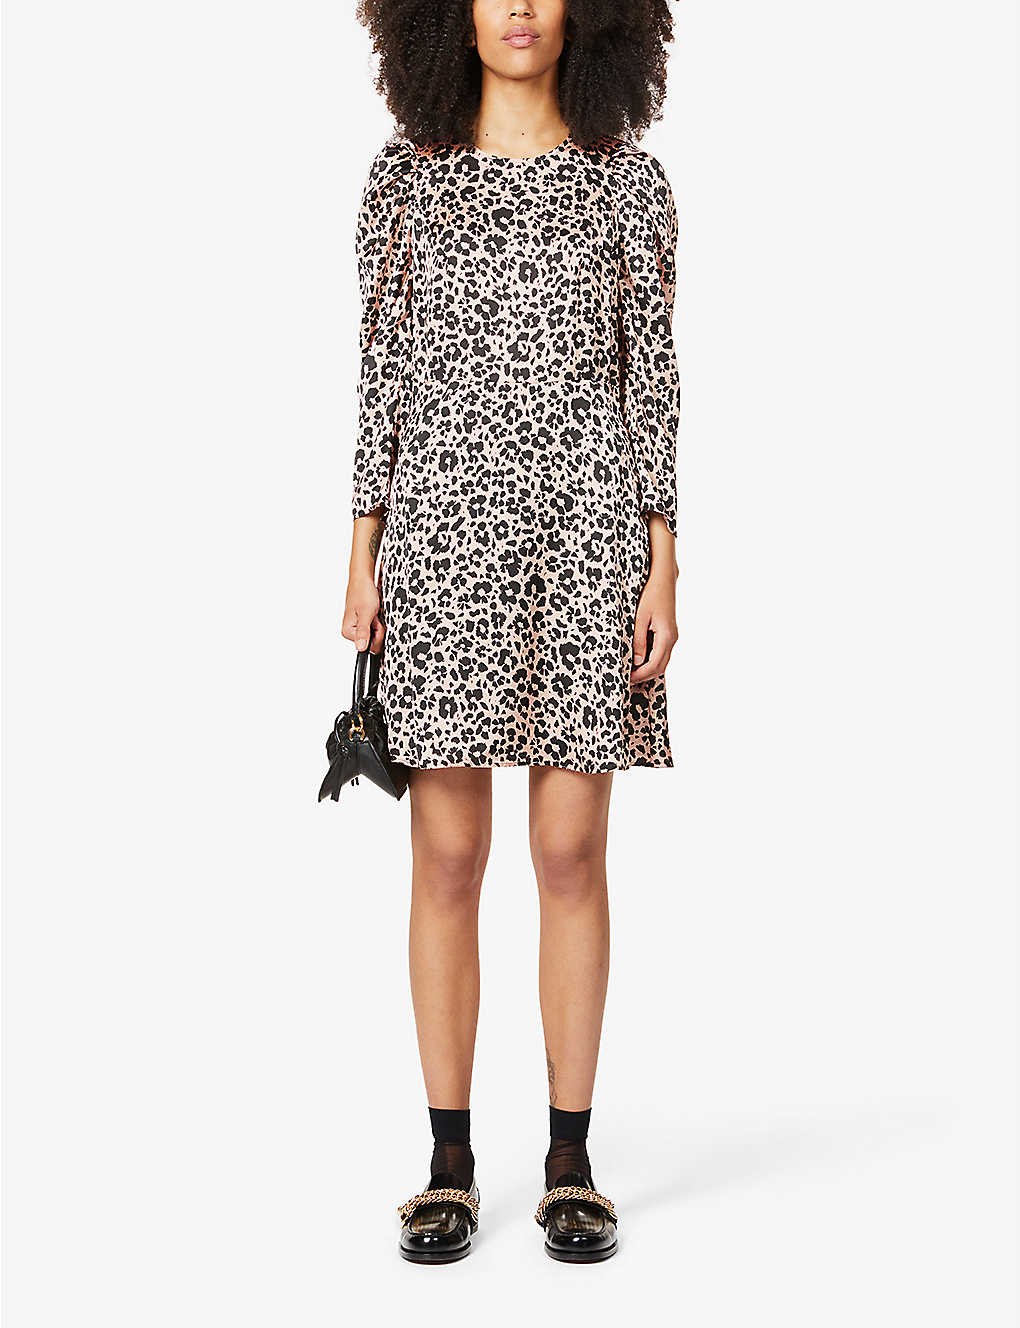 CLAUDIE PIERLOT Reyna Leopard-print Satin-crepe Mini Dress